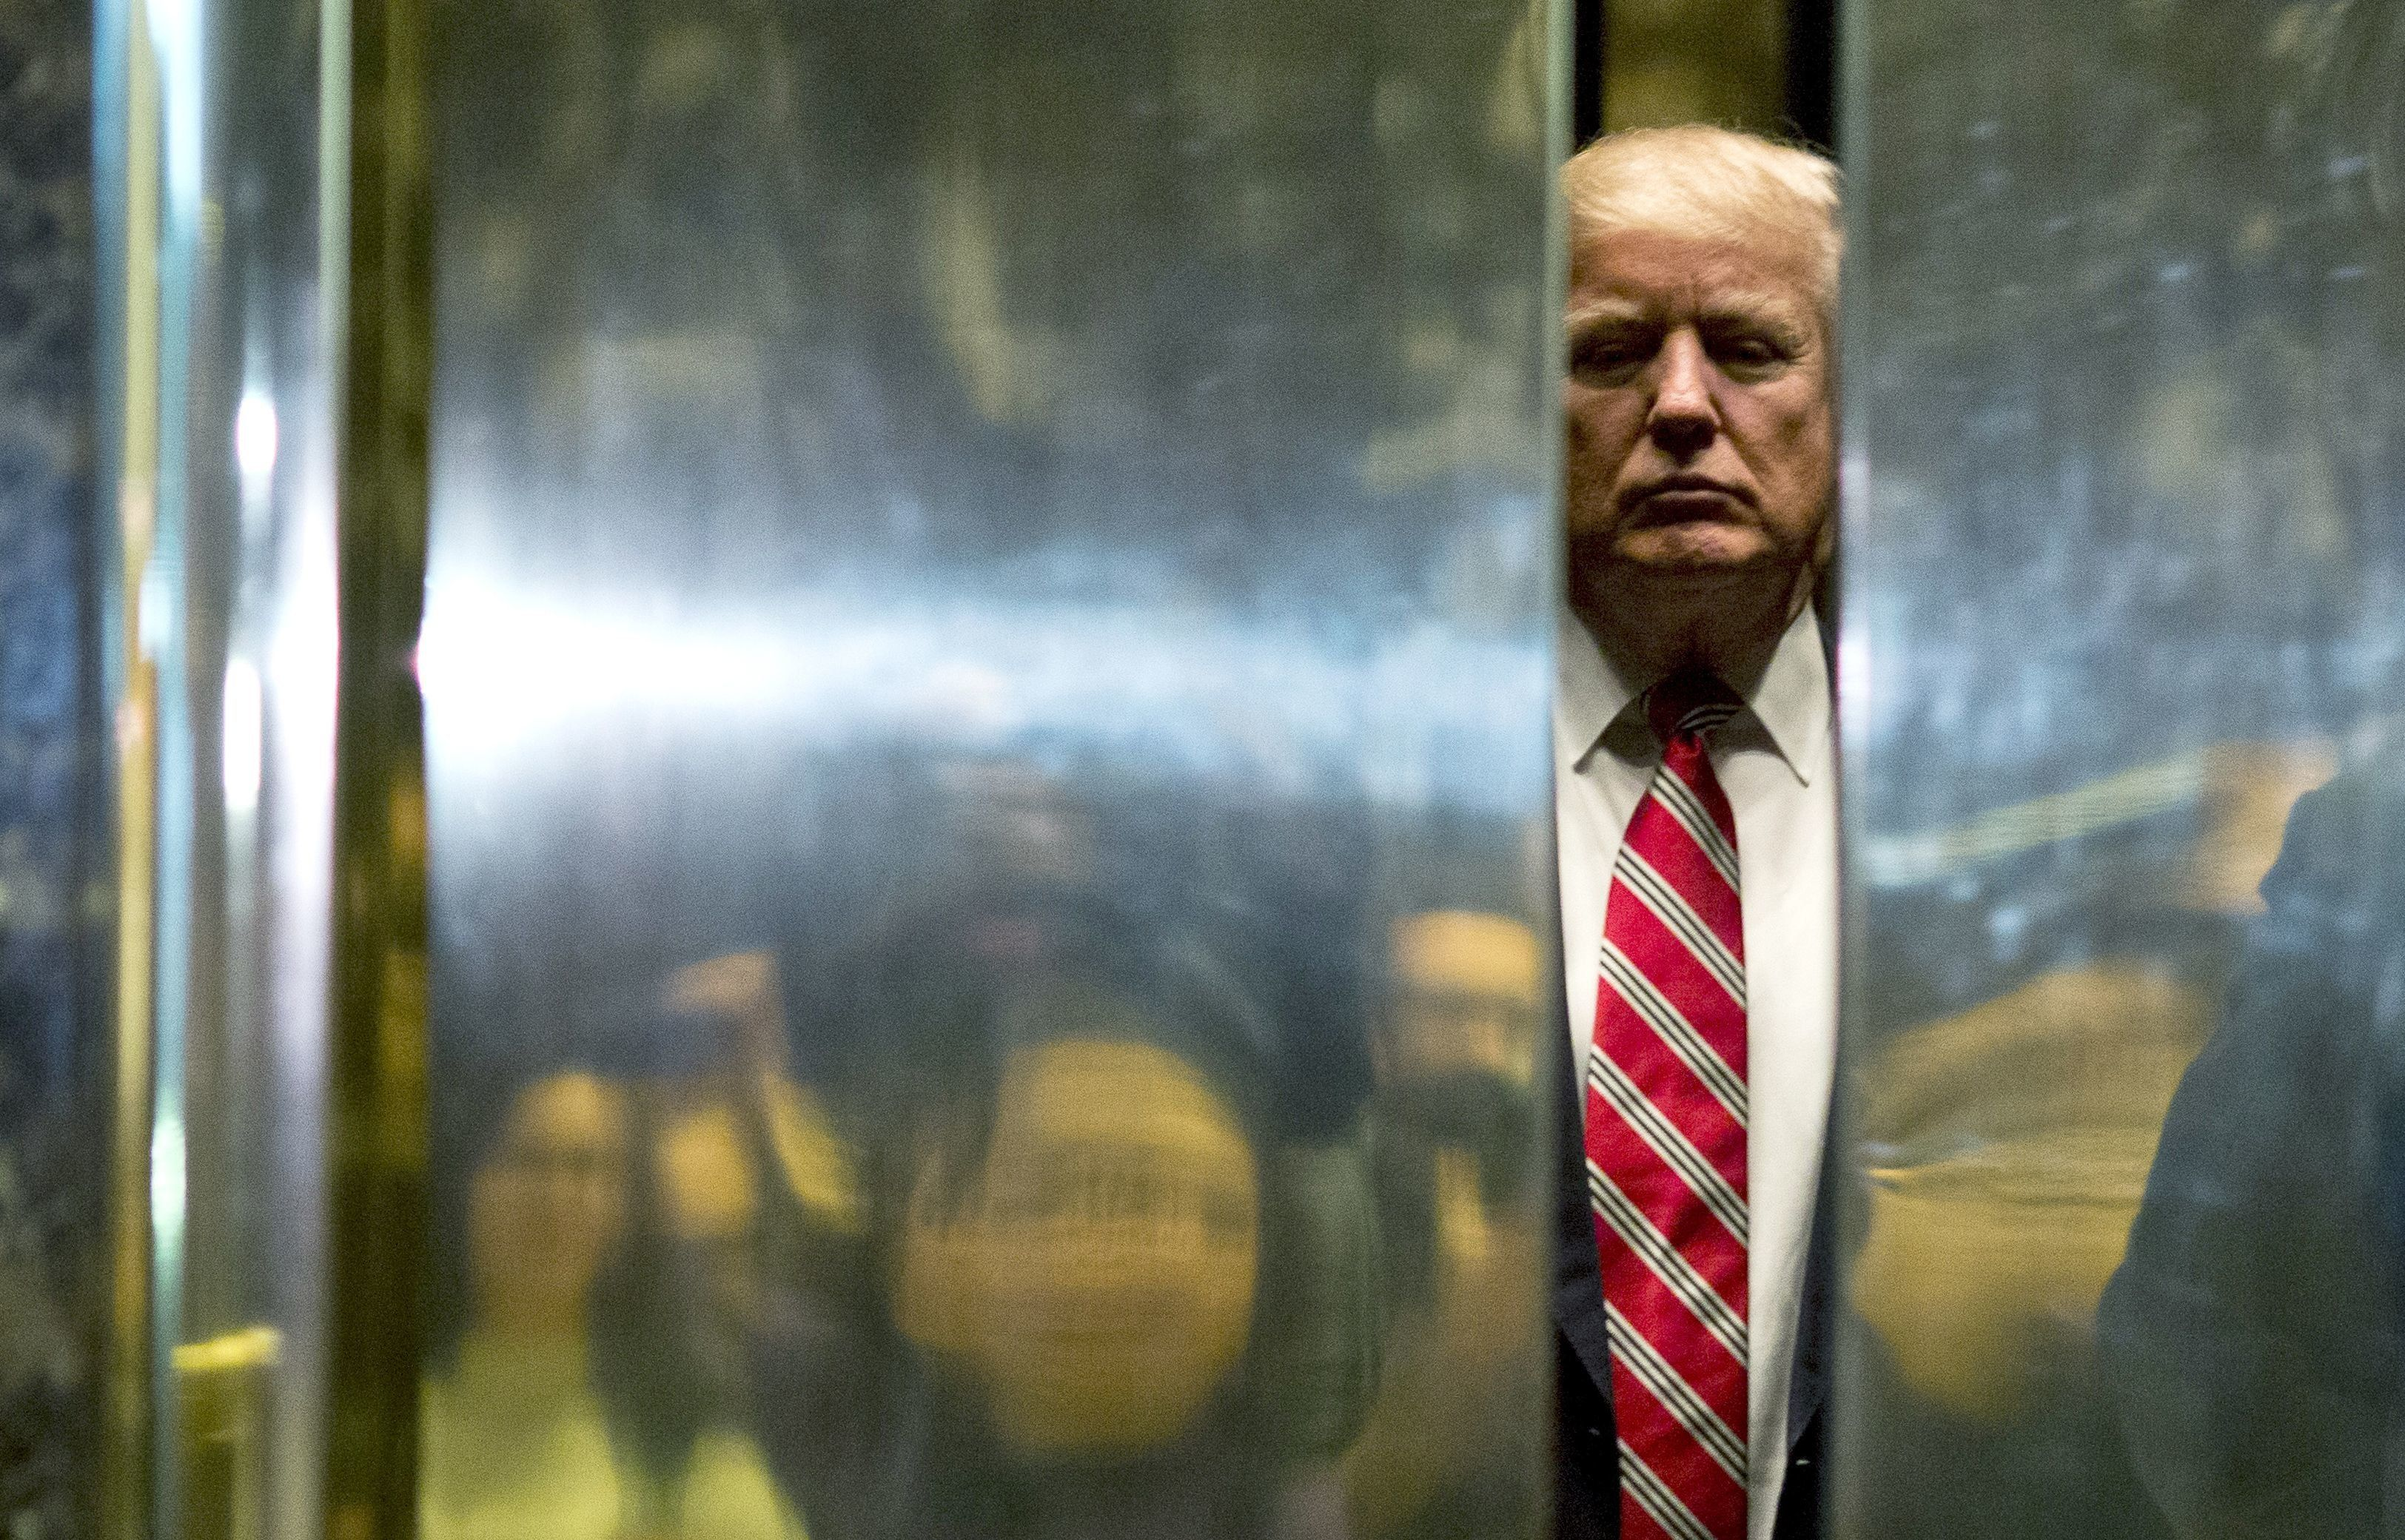 A tape might exist of Trump doing <i>something </i>in an elevator, though it's not exactly clear what that&nbs